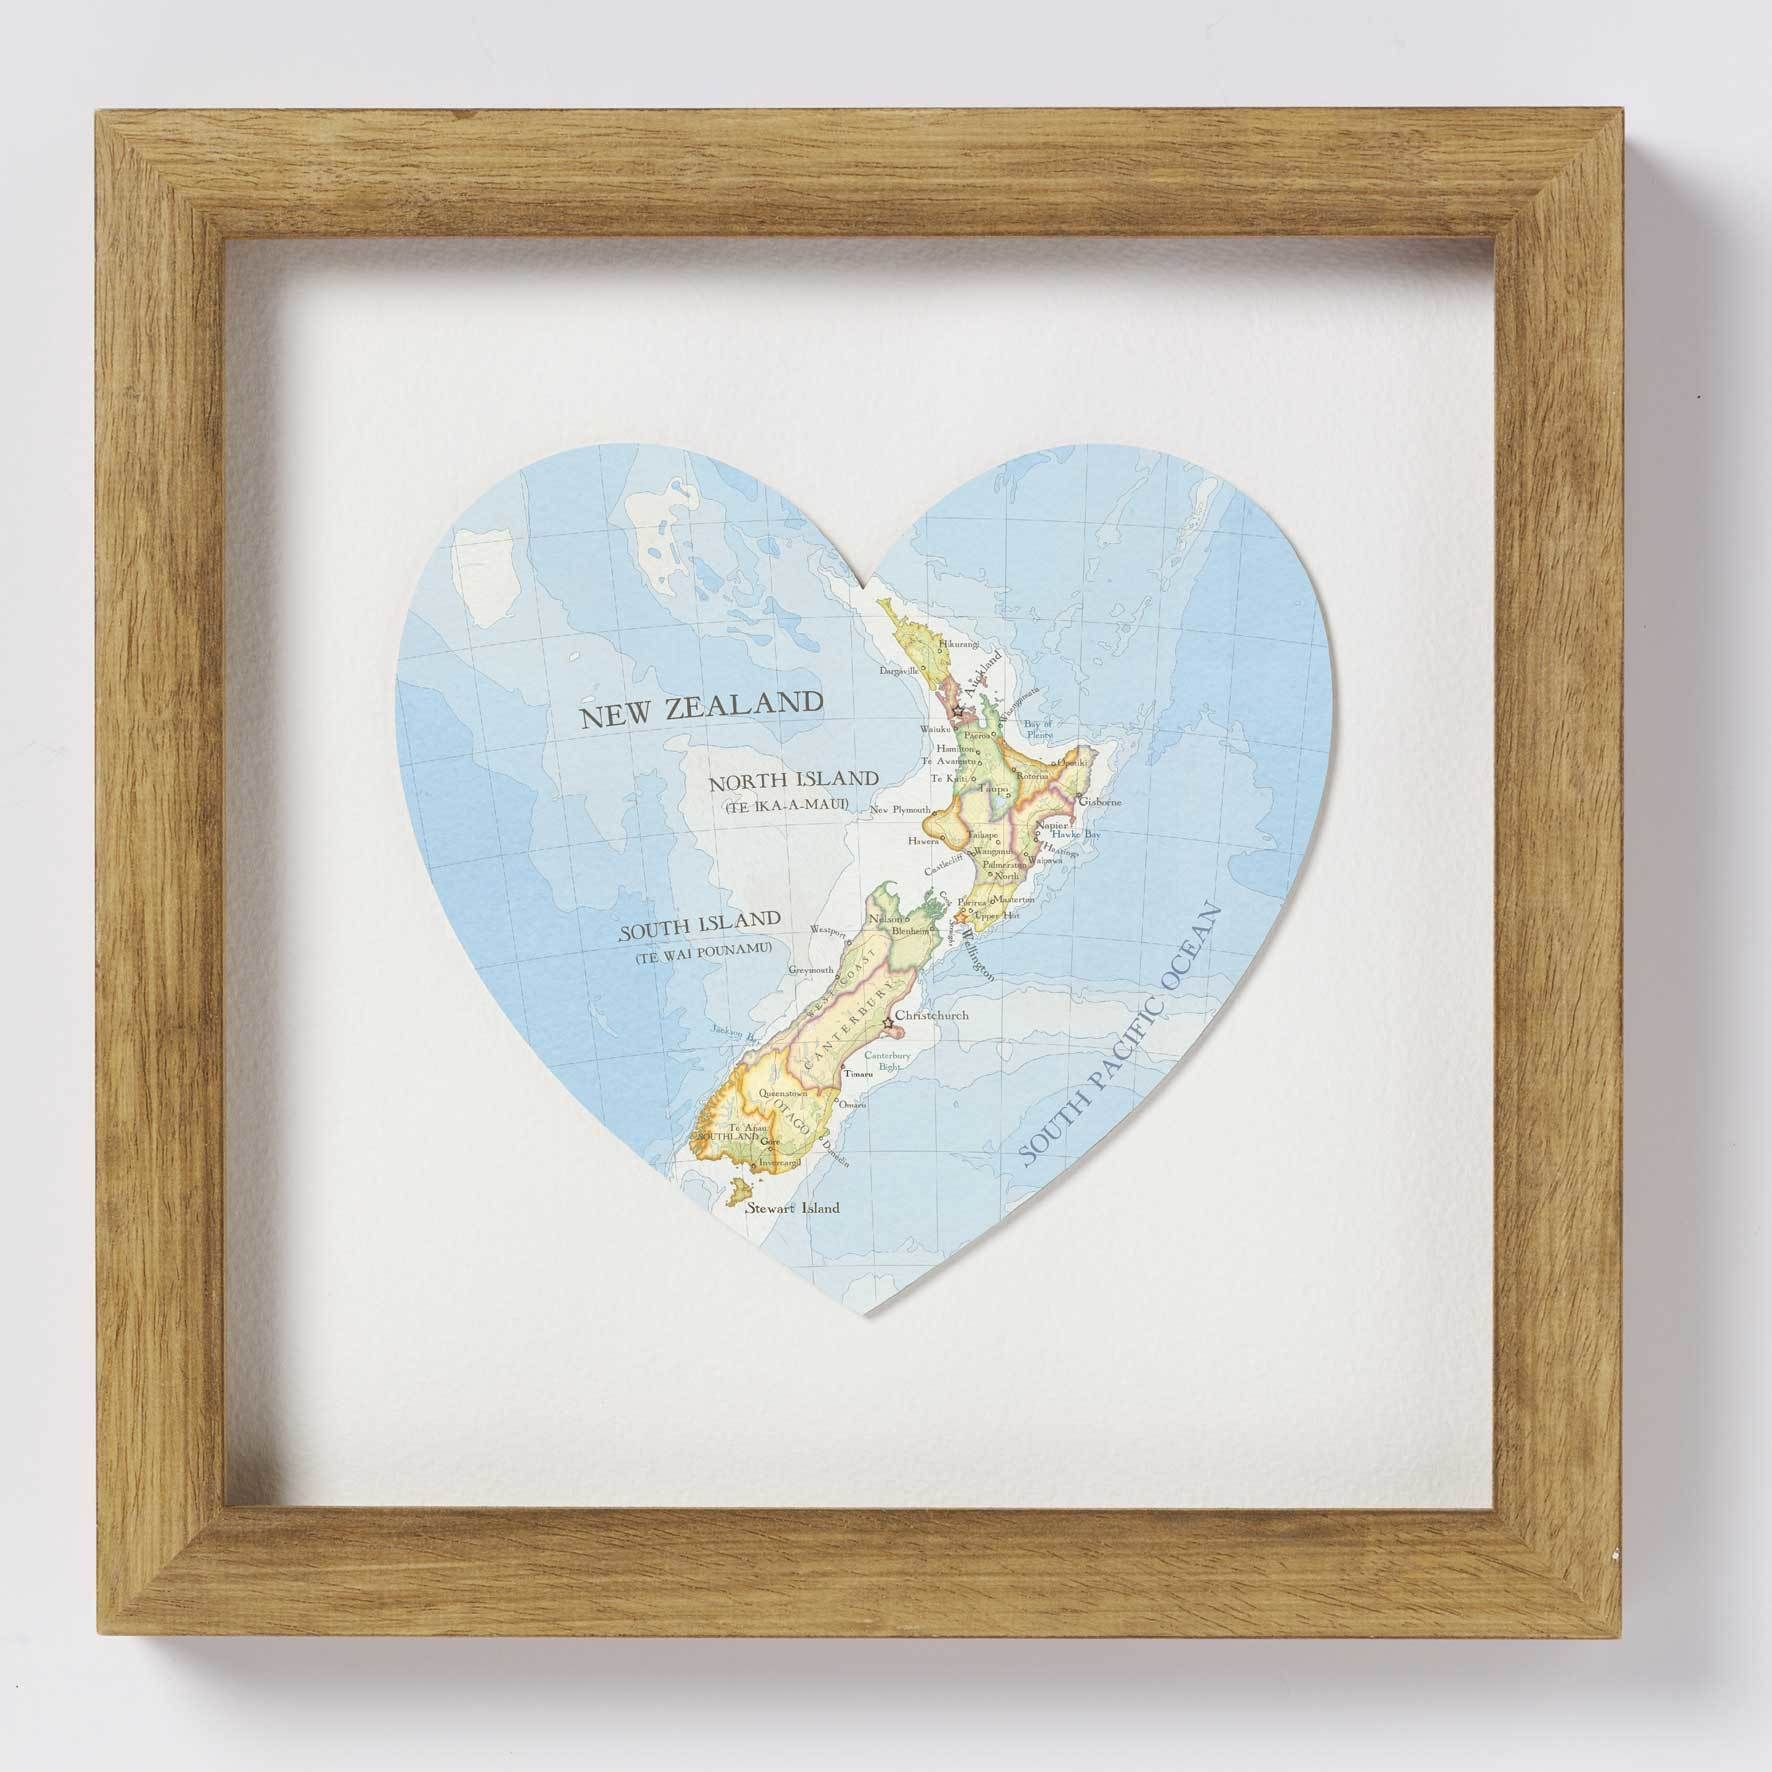 Kia ora surrounded by the south pacific ocean new zealand might kia ora surrounded by the south pacific ocean new zealand might look small on sciox Images